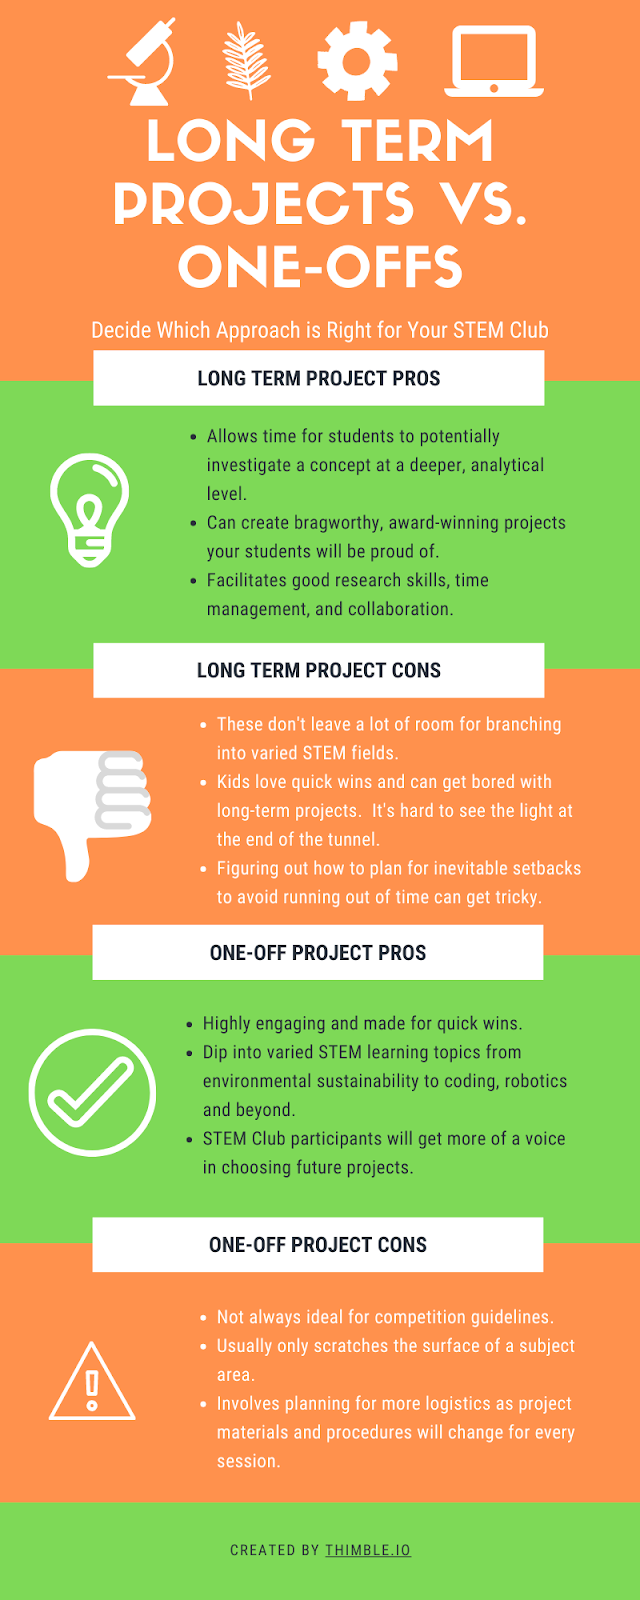 Chart outlining the pros and cons of long term projects and one-off projects. Long Term Project Pros: Allows time for students to potentially investigate a concept at a deeper, analytical level. Can create bragworthy, award-winning projects your students will be proud of. Facilitates good research skills, time management, and collaboration. Long Term Cons: These don't leave a lot of room for branching into varied STEM fields. Kids love quick wins and can get bored with long-term projects. It's hard to see the light at the end of the tunnel. Figuring out how to plan for inevitable setbacks to avoid running out of time can get tricky. One-Off Project Pros: Highly engaging and made for quick wins. Dip into varied STEM learning topics from environmental sustainability to coding, robotics and beyond. STEM Club participants will get more of a voice in choosing future projects. One-Off Project Cons: Not always ideal for competition guidelines. Usually only scratches the surface of a subject area. Involves planning for more logistics as project materials and procedures will change for every session.